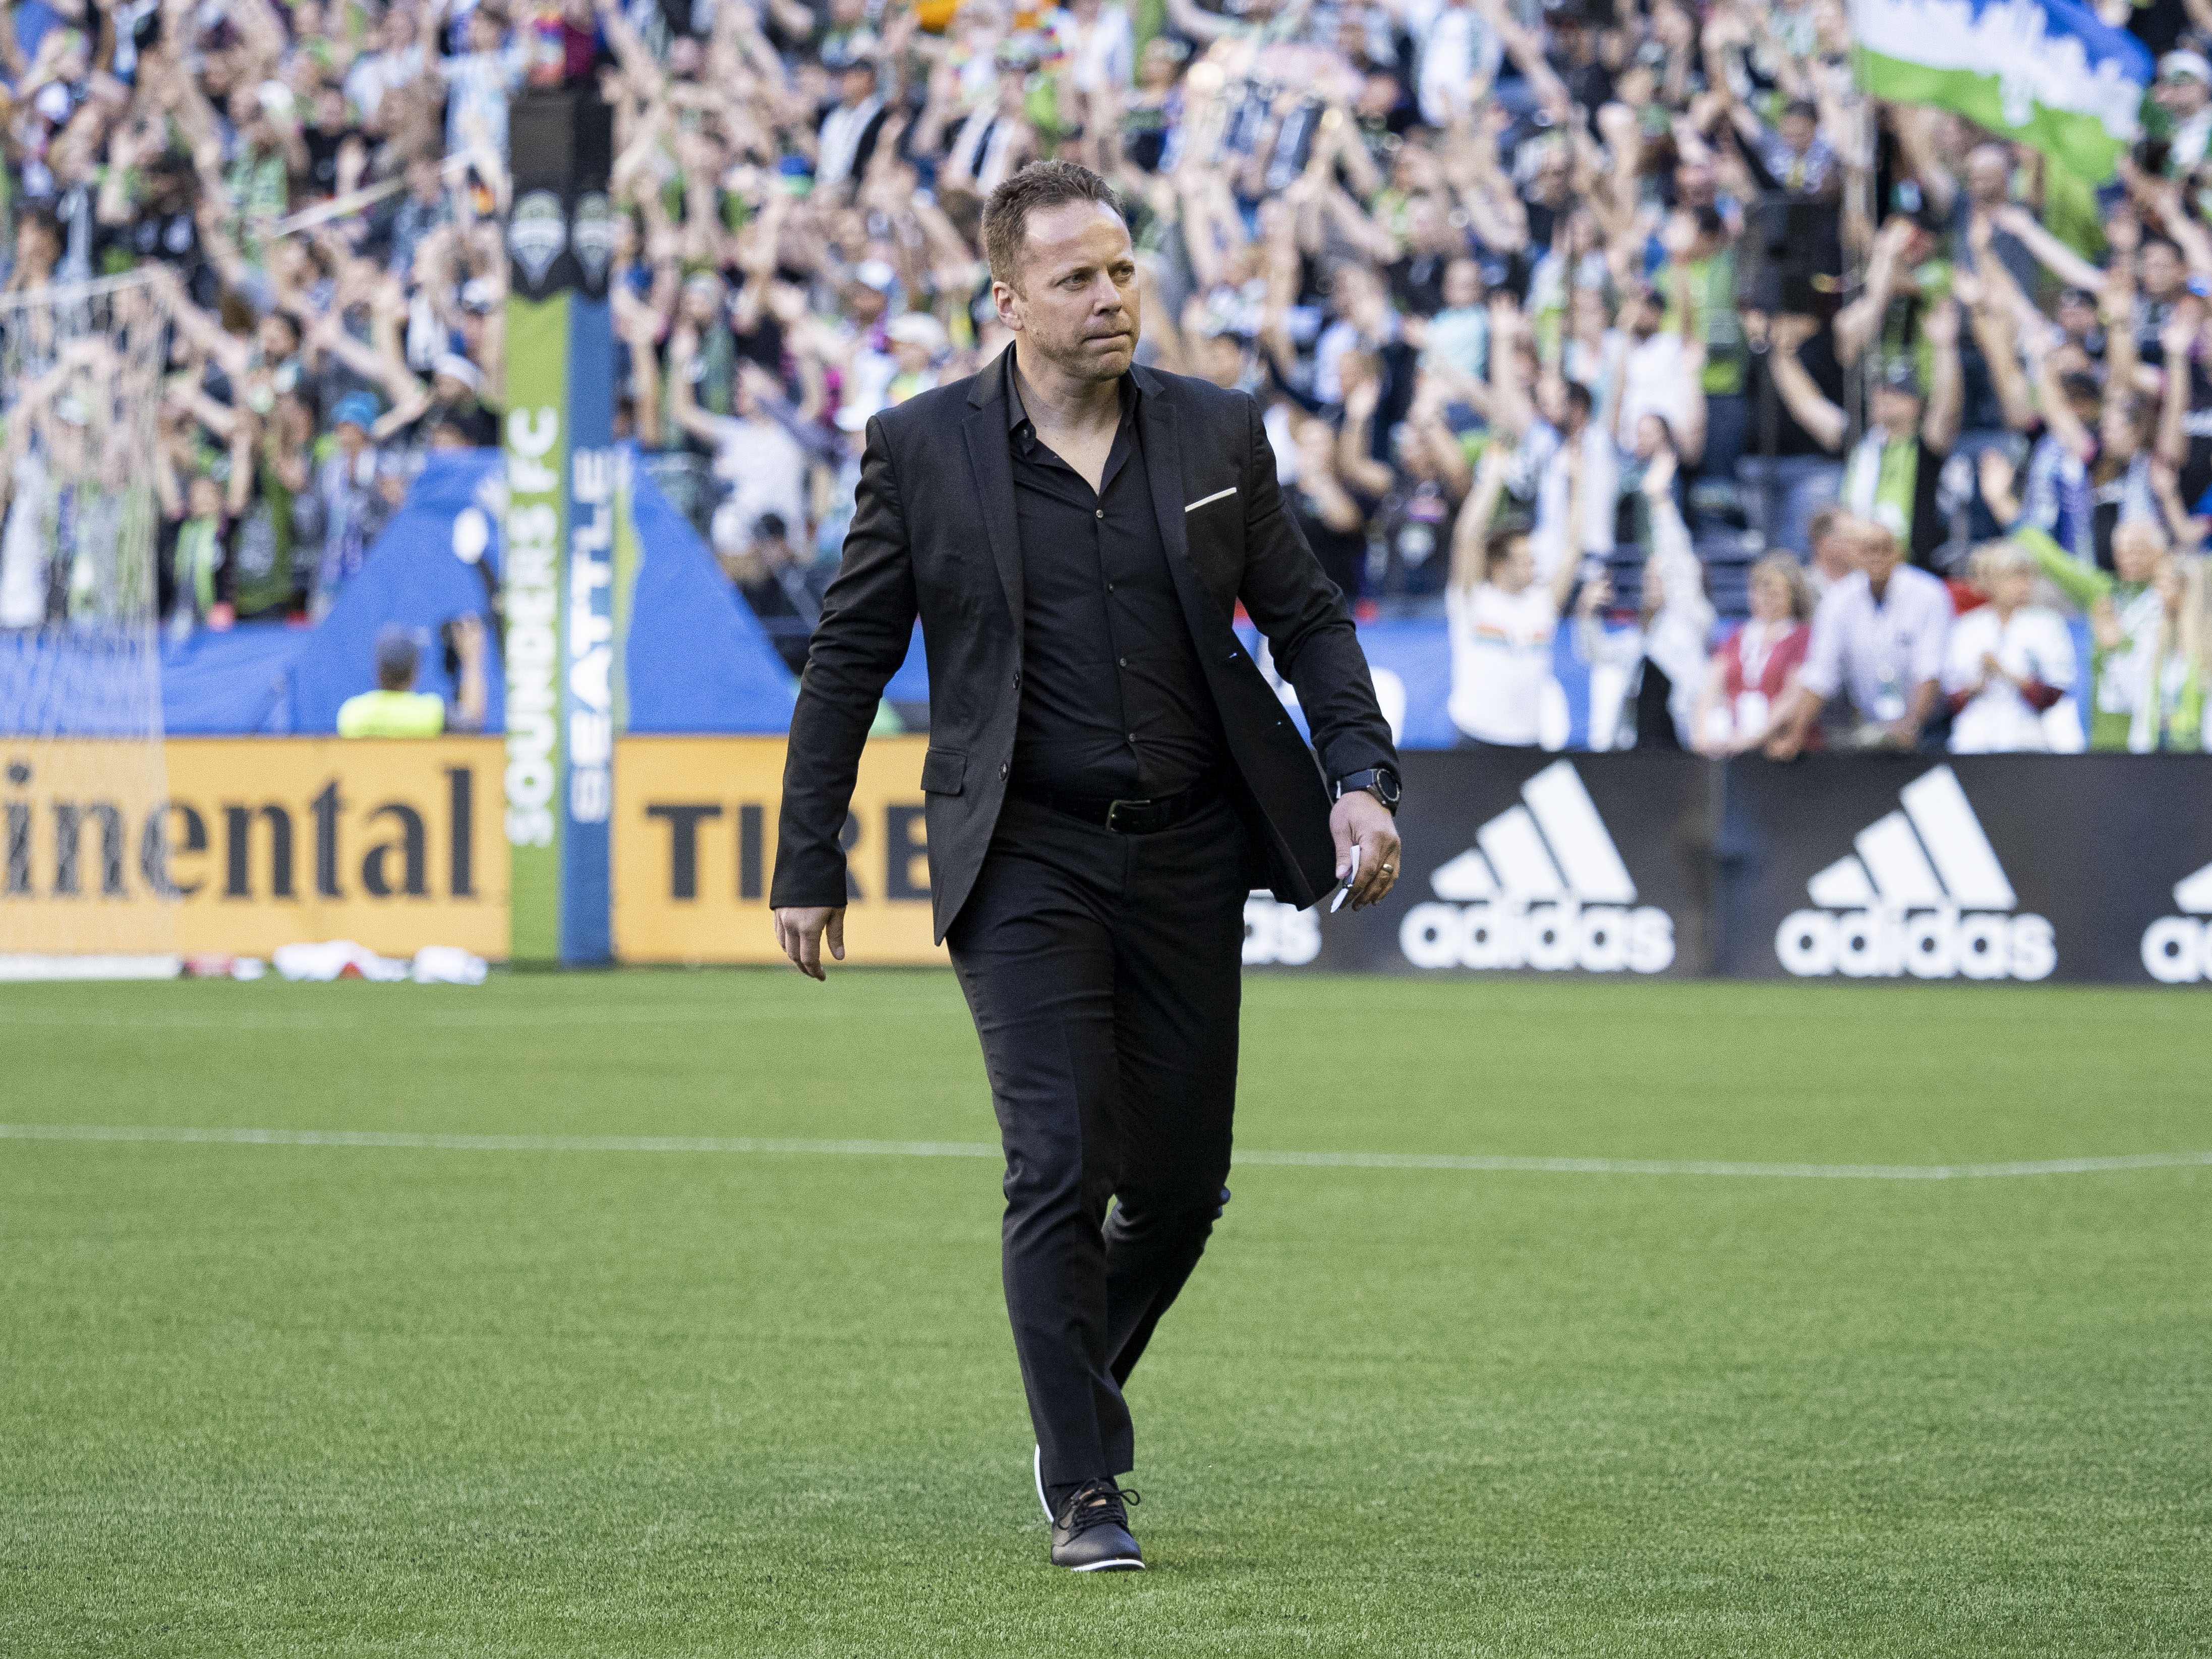 SOCCER: JUN 29 MLS - Vancouver Whitecaps at Seattle Sounders FC